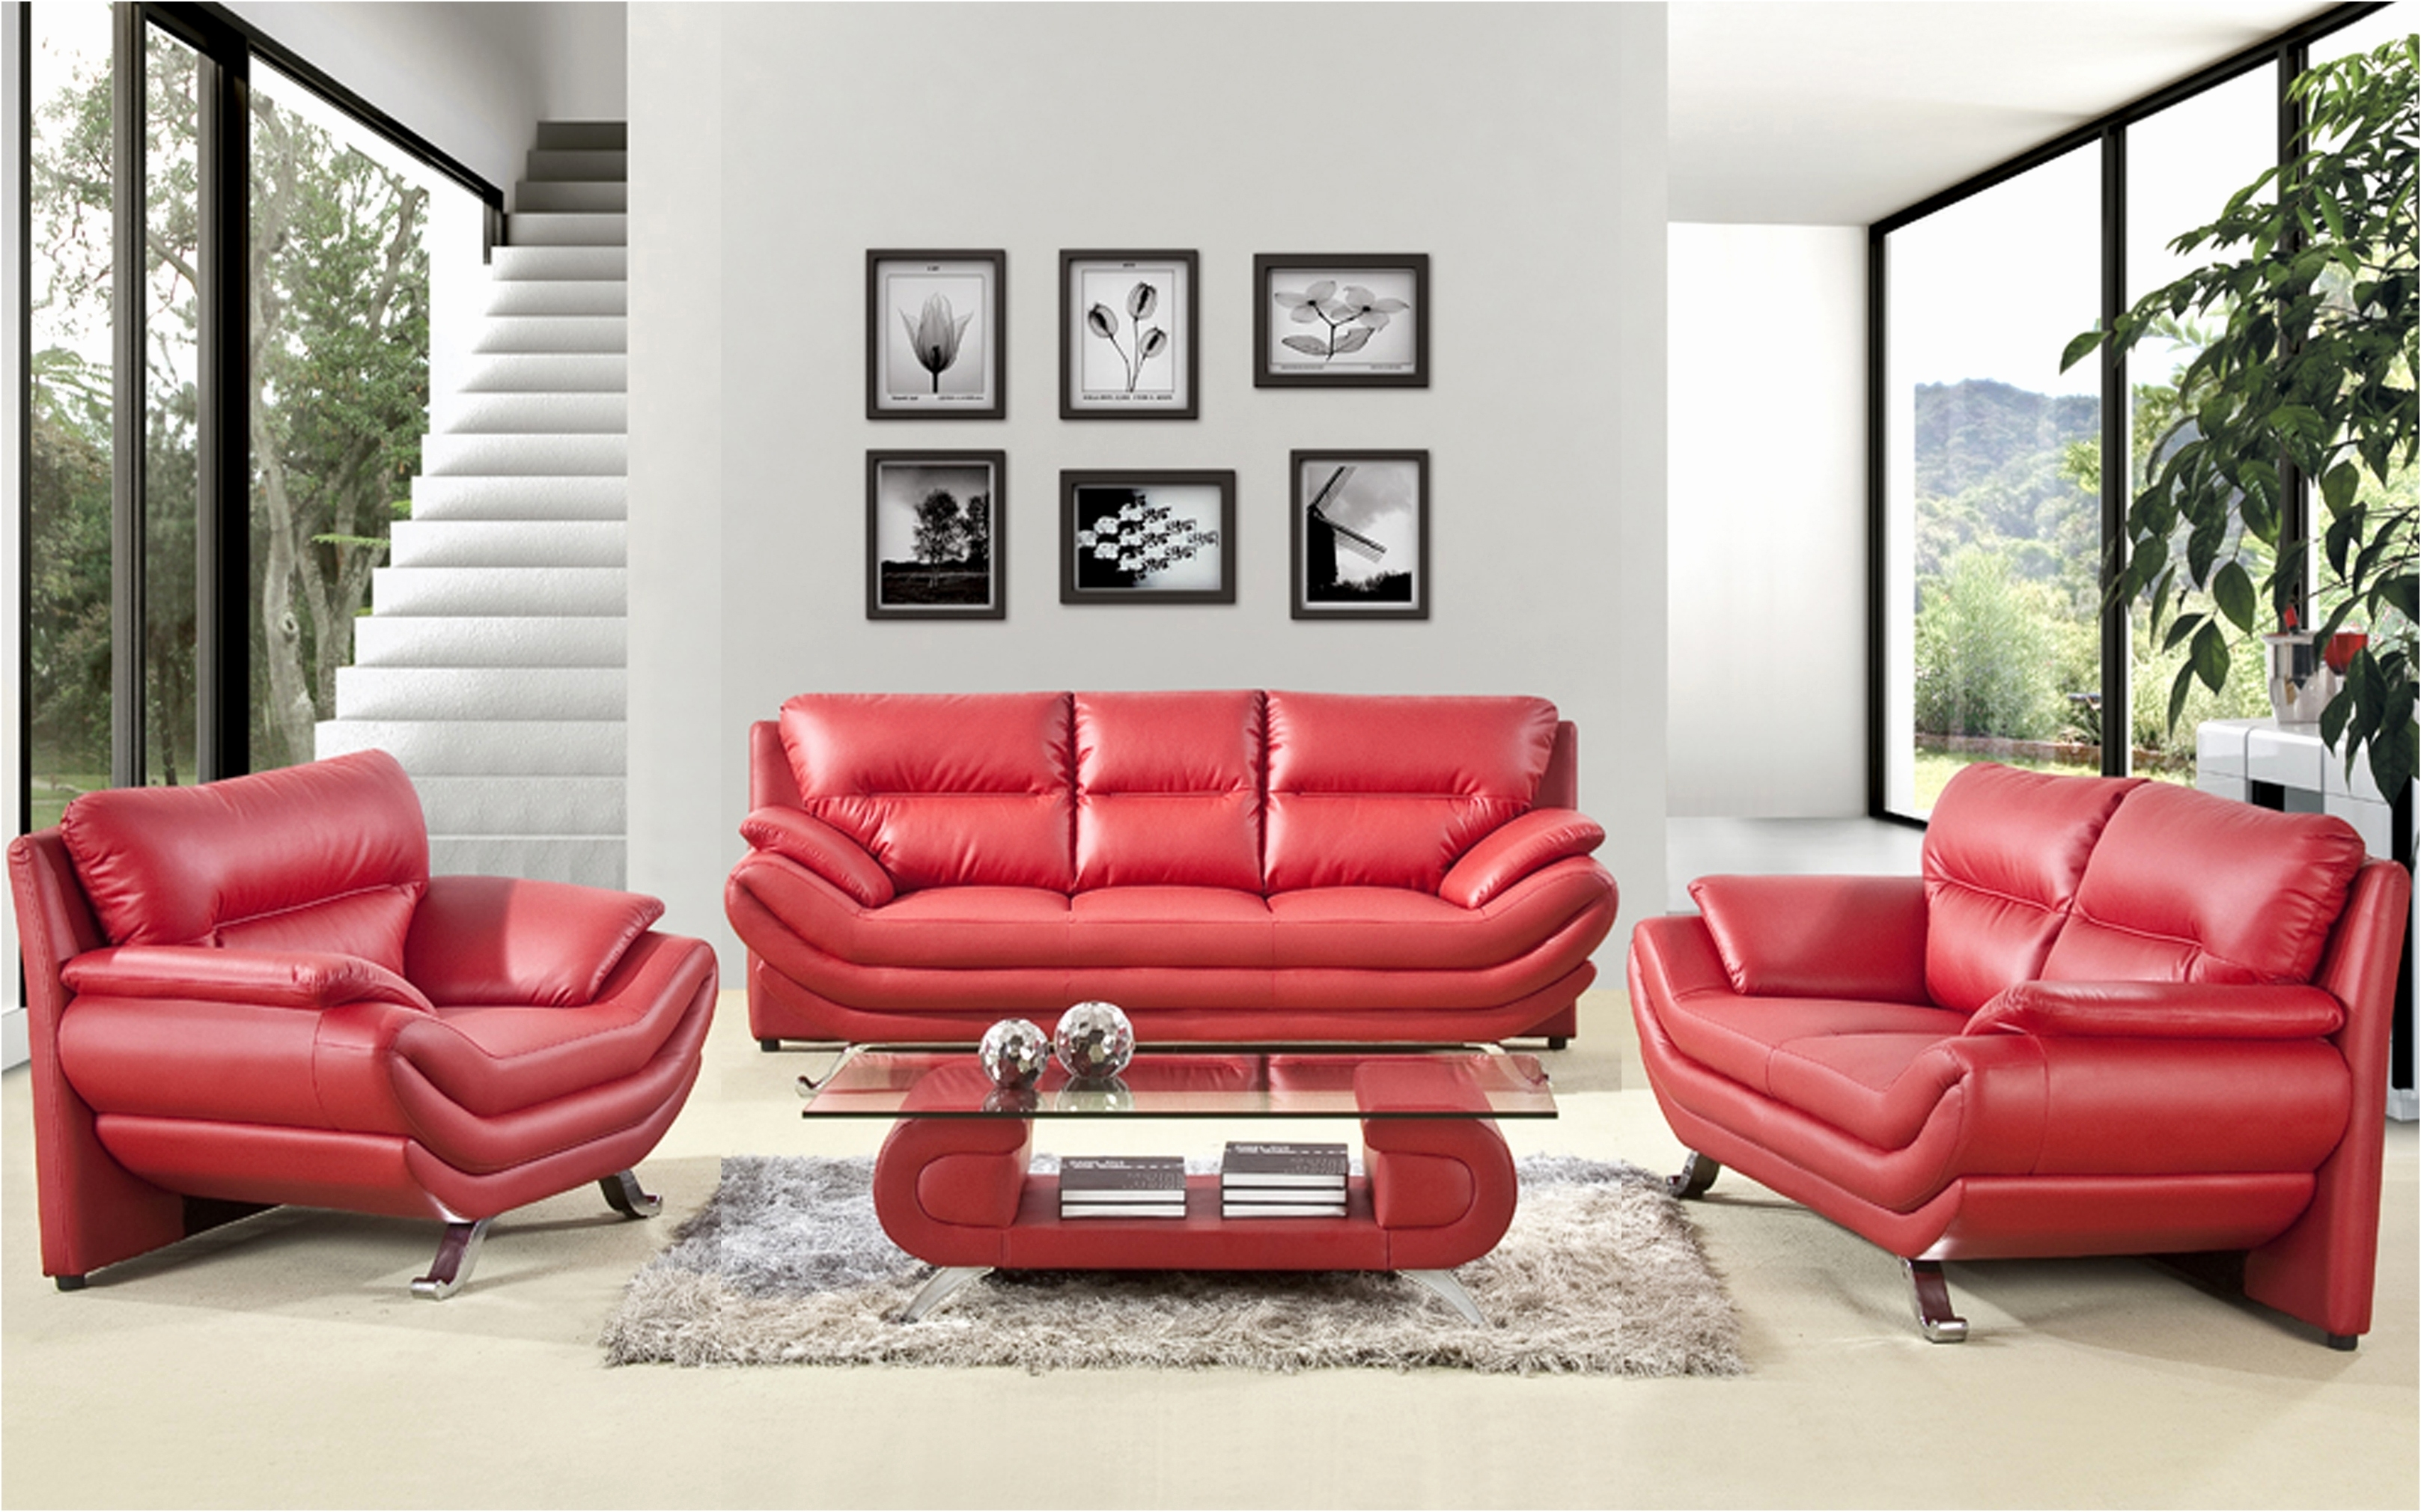 Awesome Red Leather Sofas Inspirational – Intuisiblog Pertaining To Red Leather Couches For Living Room (View 5 of 10)